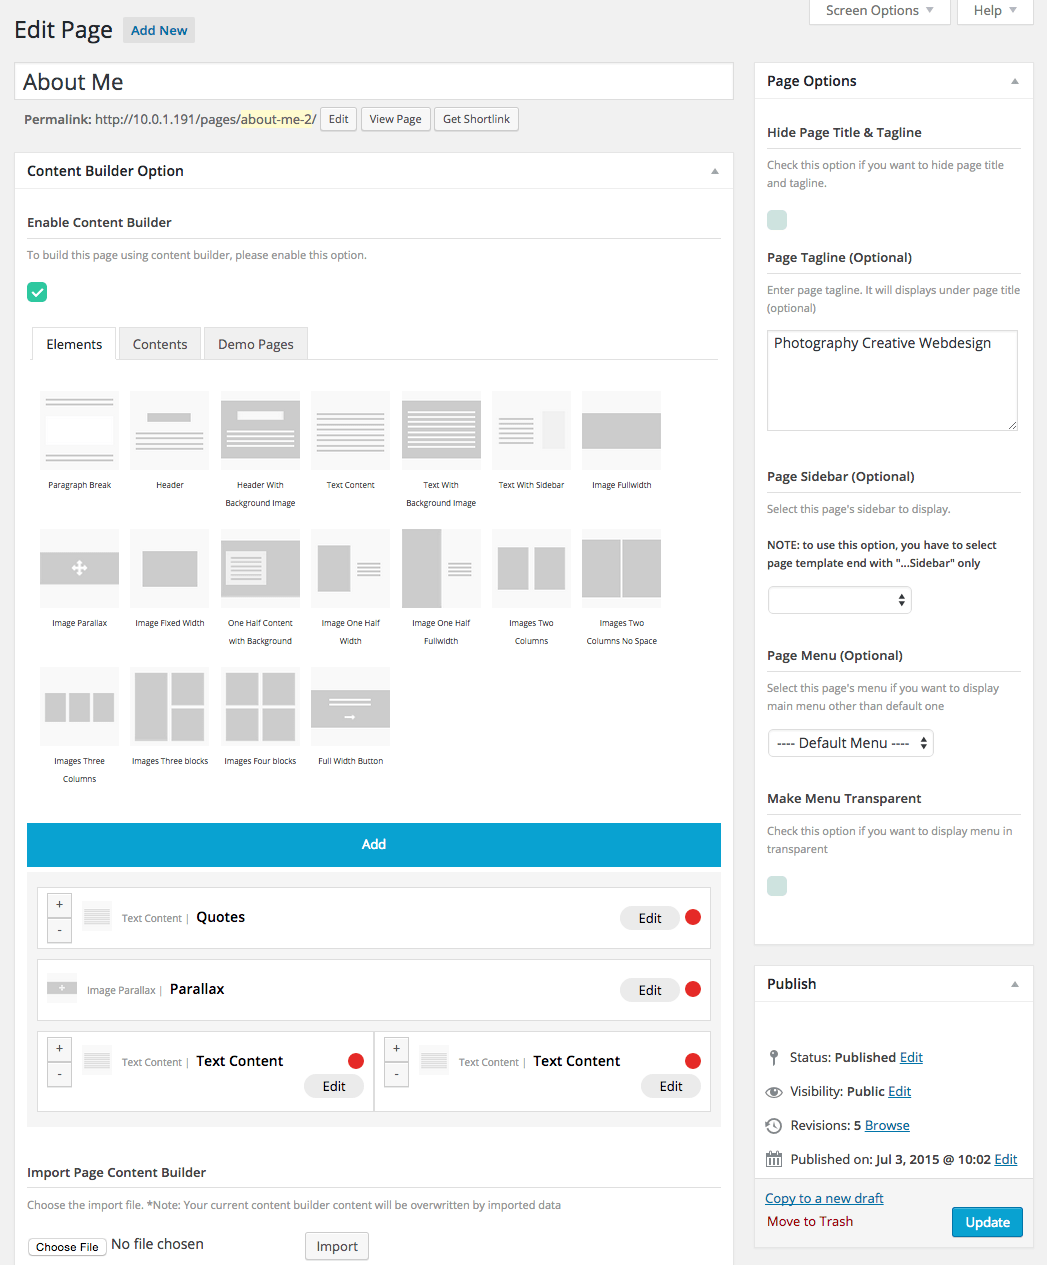 Page Content Builder Options